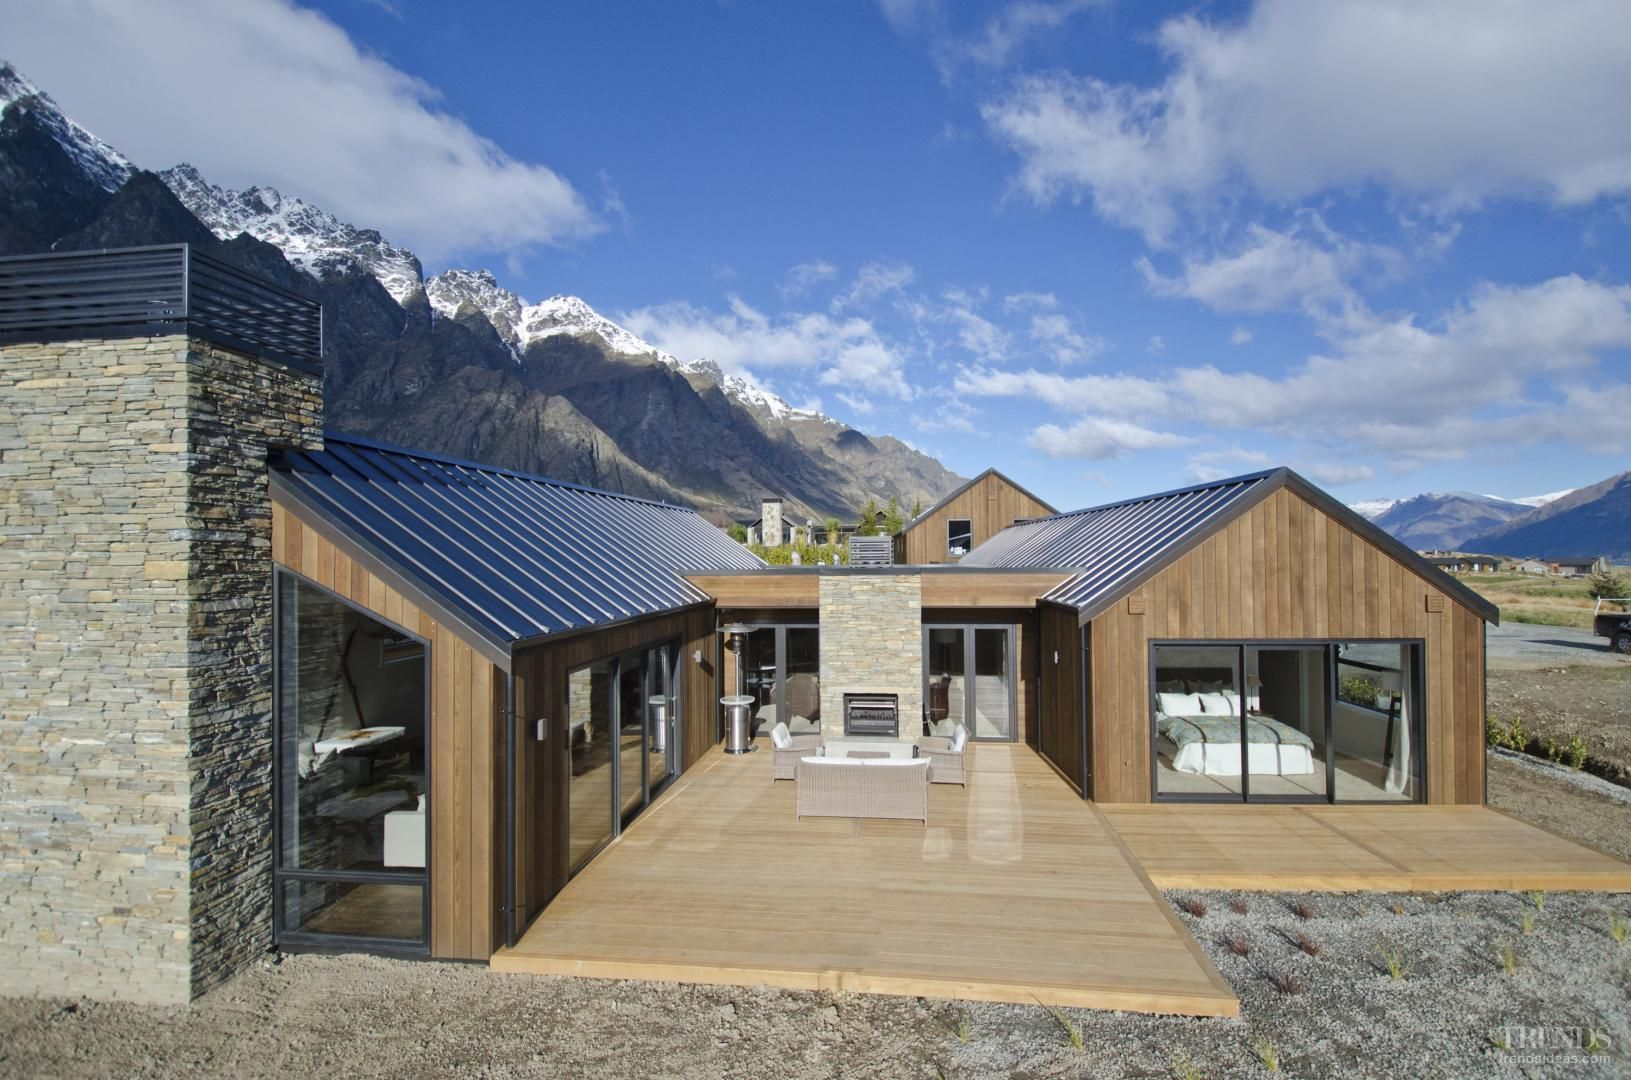 david reid homes show home in queenstown house design